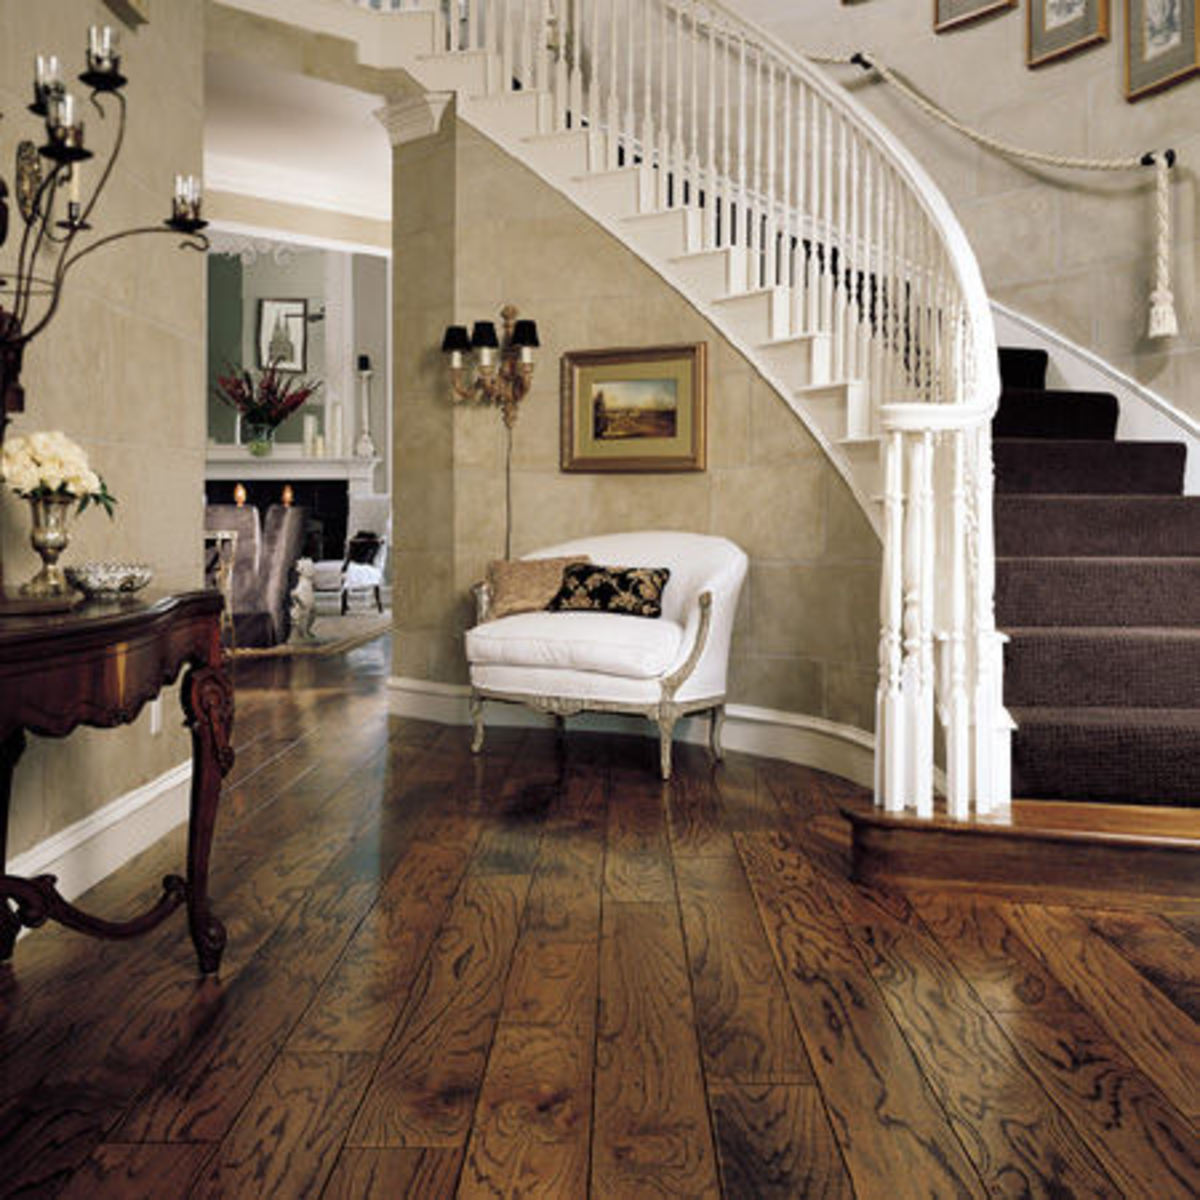 engineered hardwood floor - Different Types Of Flooring For Living